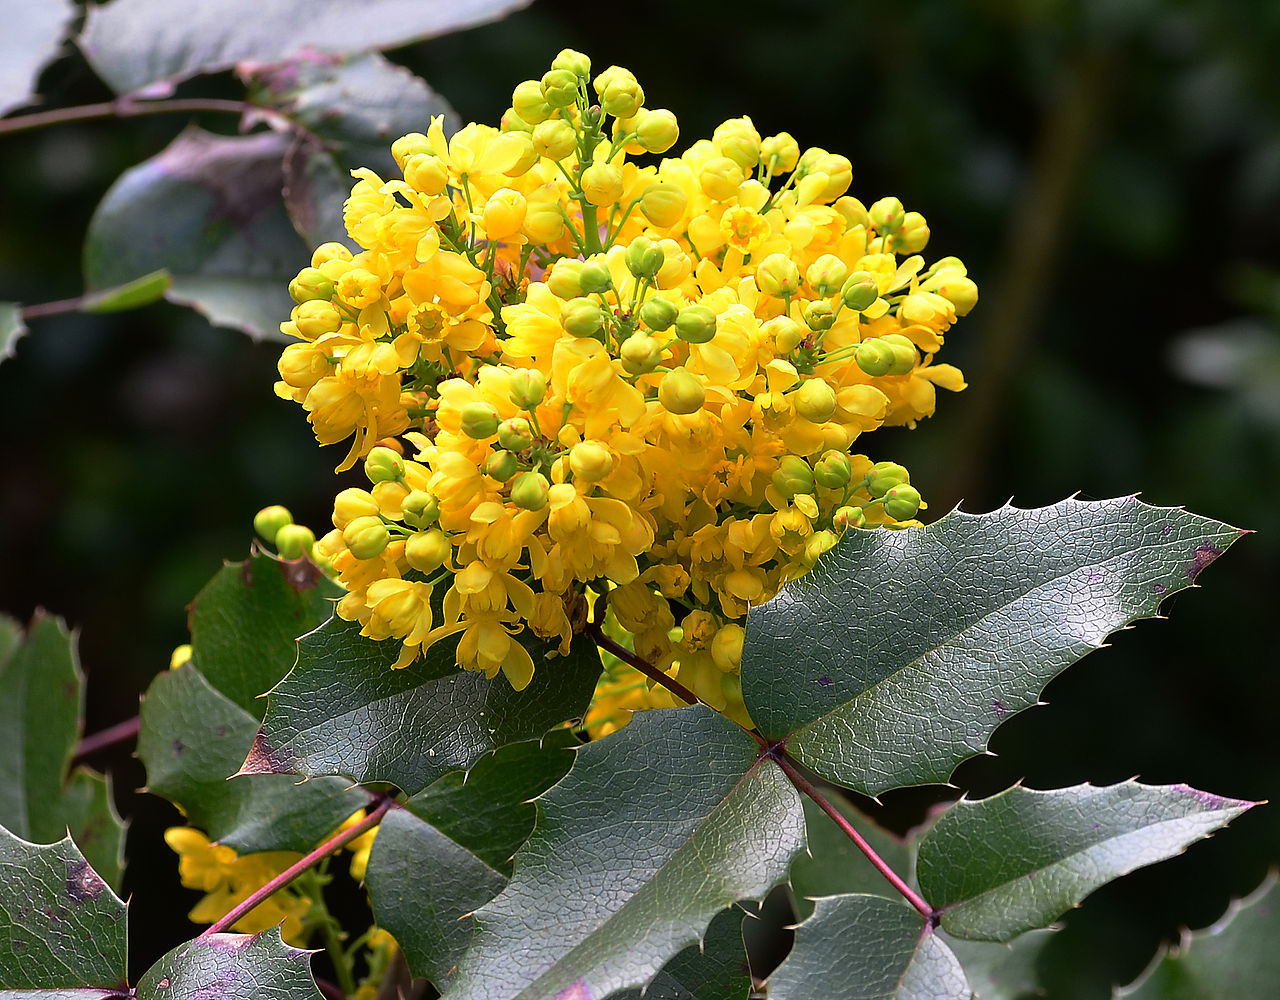 Mahonia aquifolium (Oregon grapeholly), flower